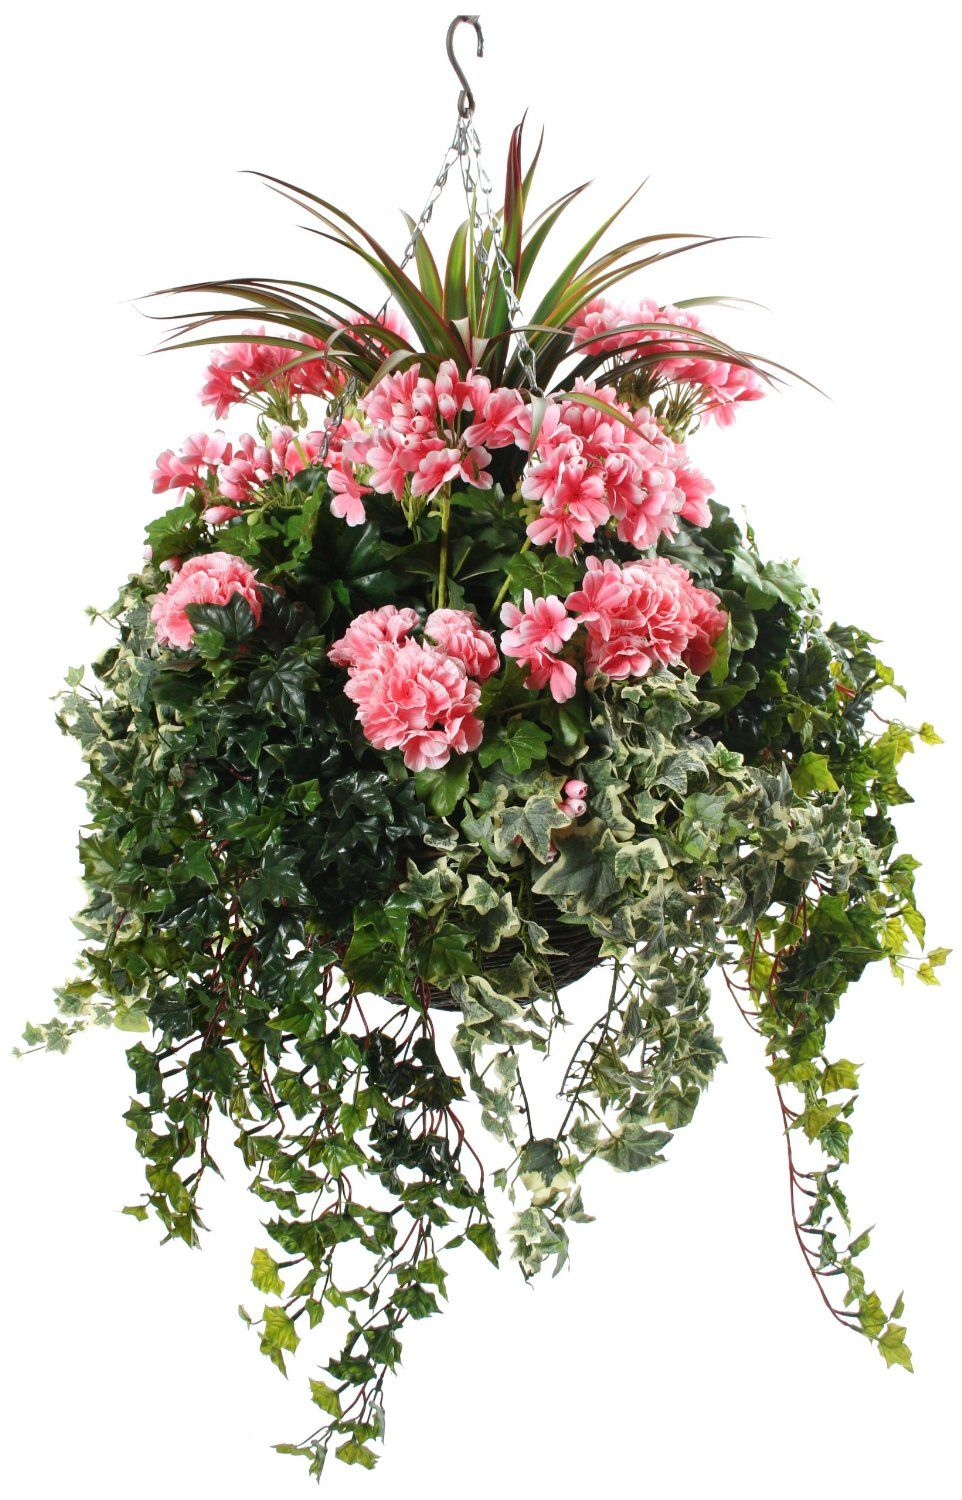 Artificial Hanging Basket With Pink Geraniums And Green Foliage